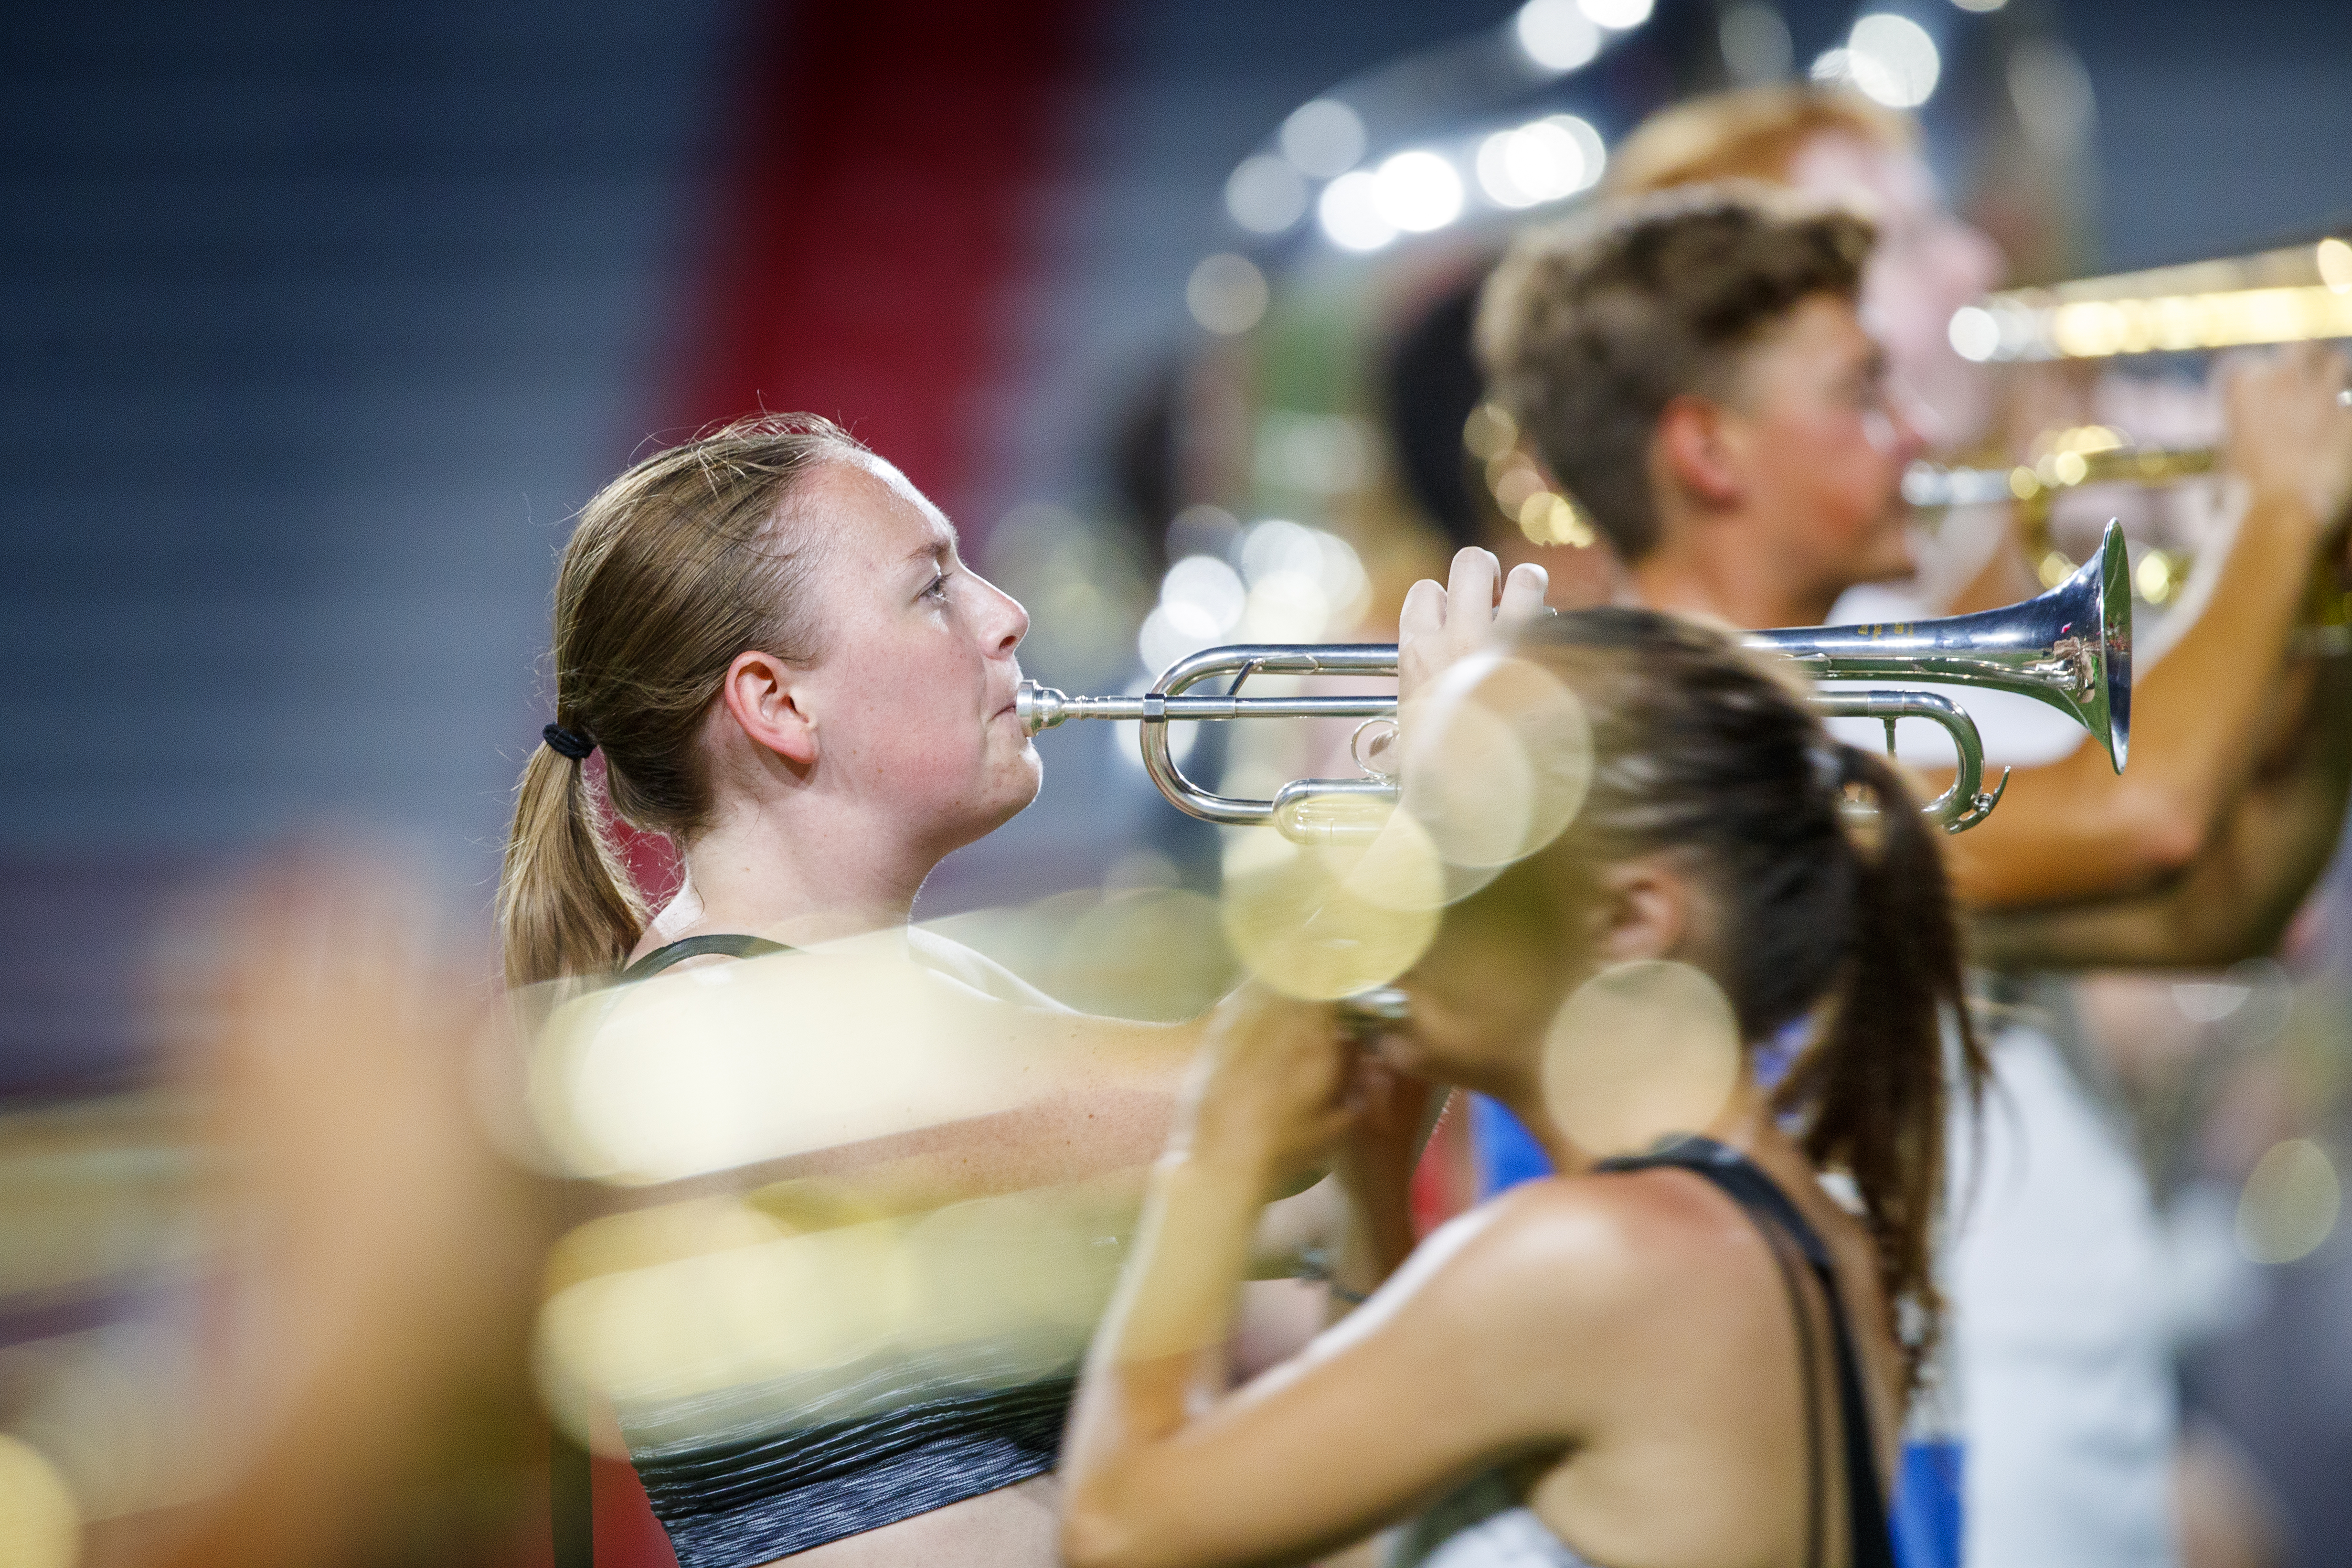 Jenna McCoy and the Cornhusker Marching Band goes through their pregame routing during Tuesday evening practice in Memorial Stadium. August 20, 2019.   Craig Chandler, University Communication